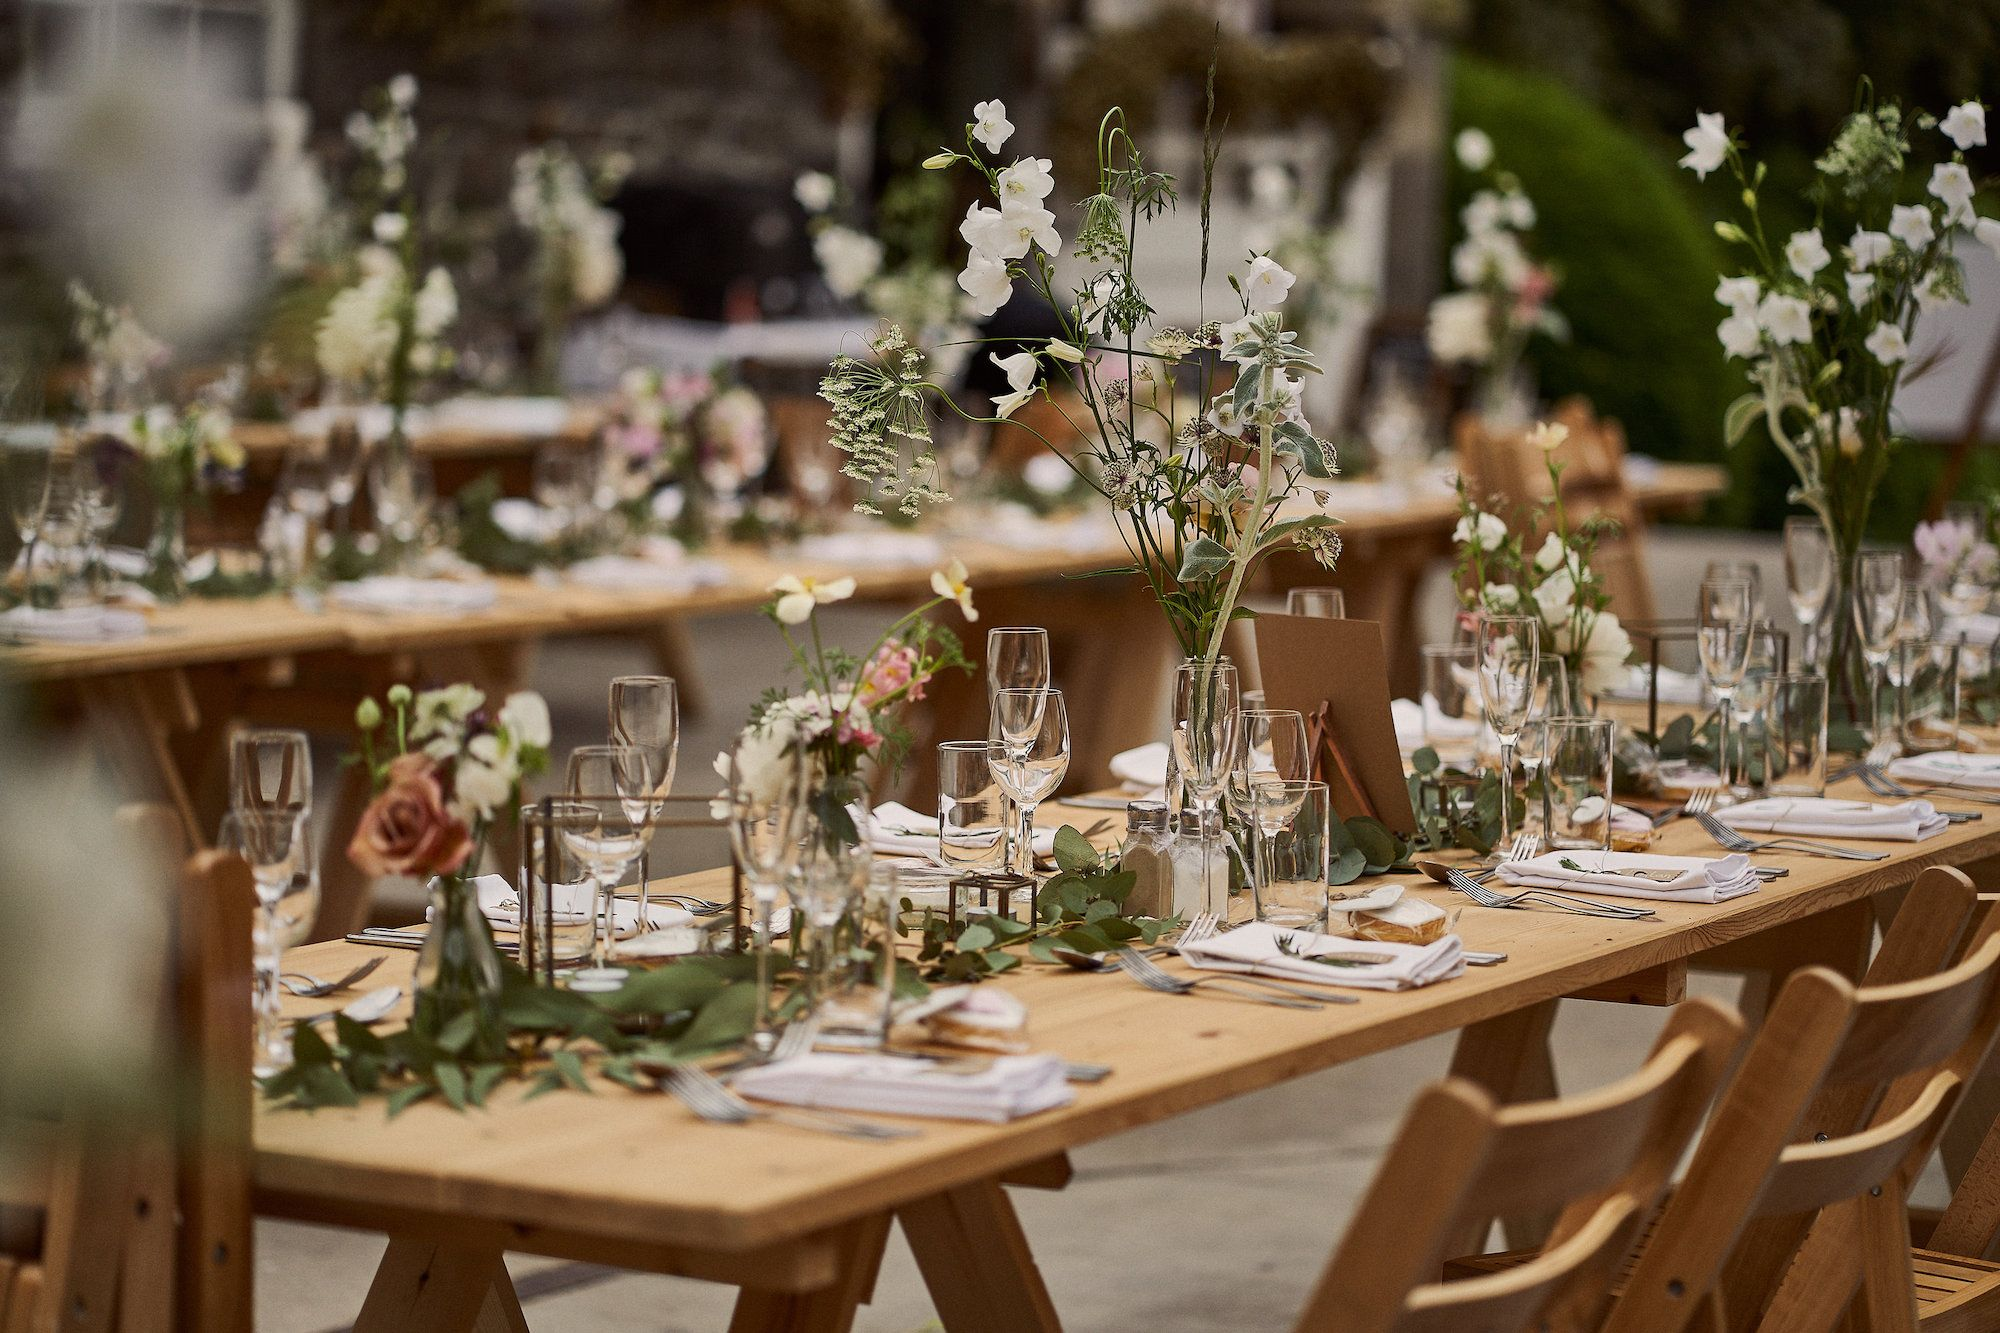 Wedding Table Decoration Ideas In 2020 Country House Wedding Venues Table Decorations Wedding Table